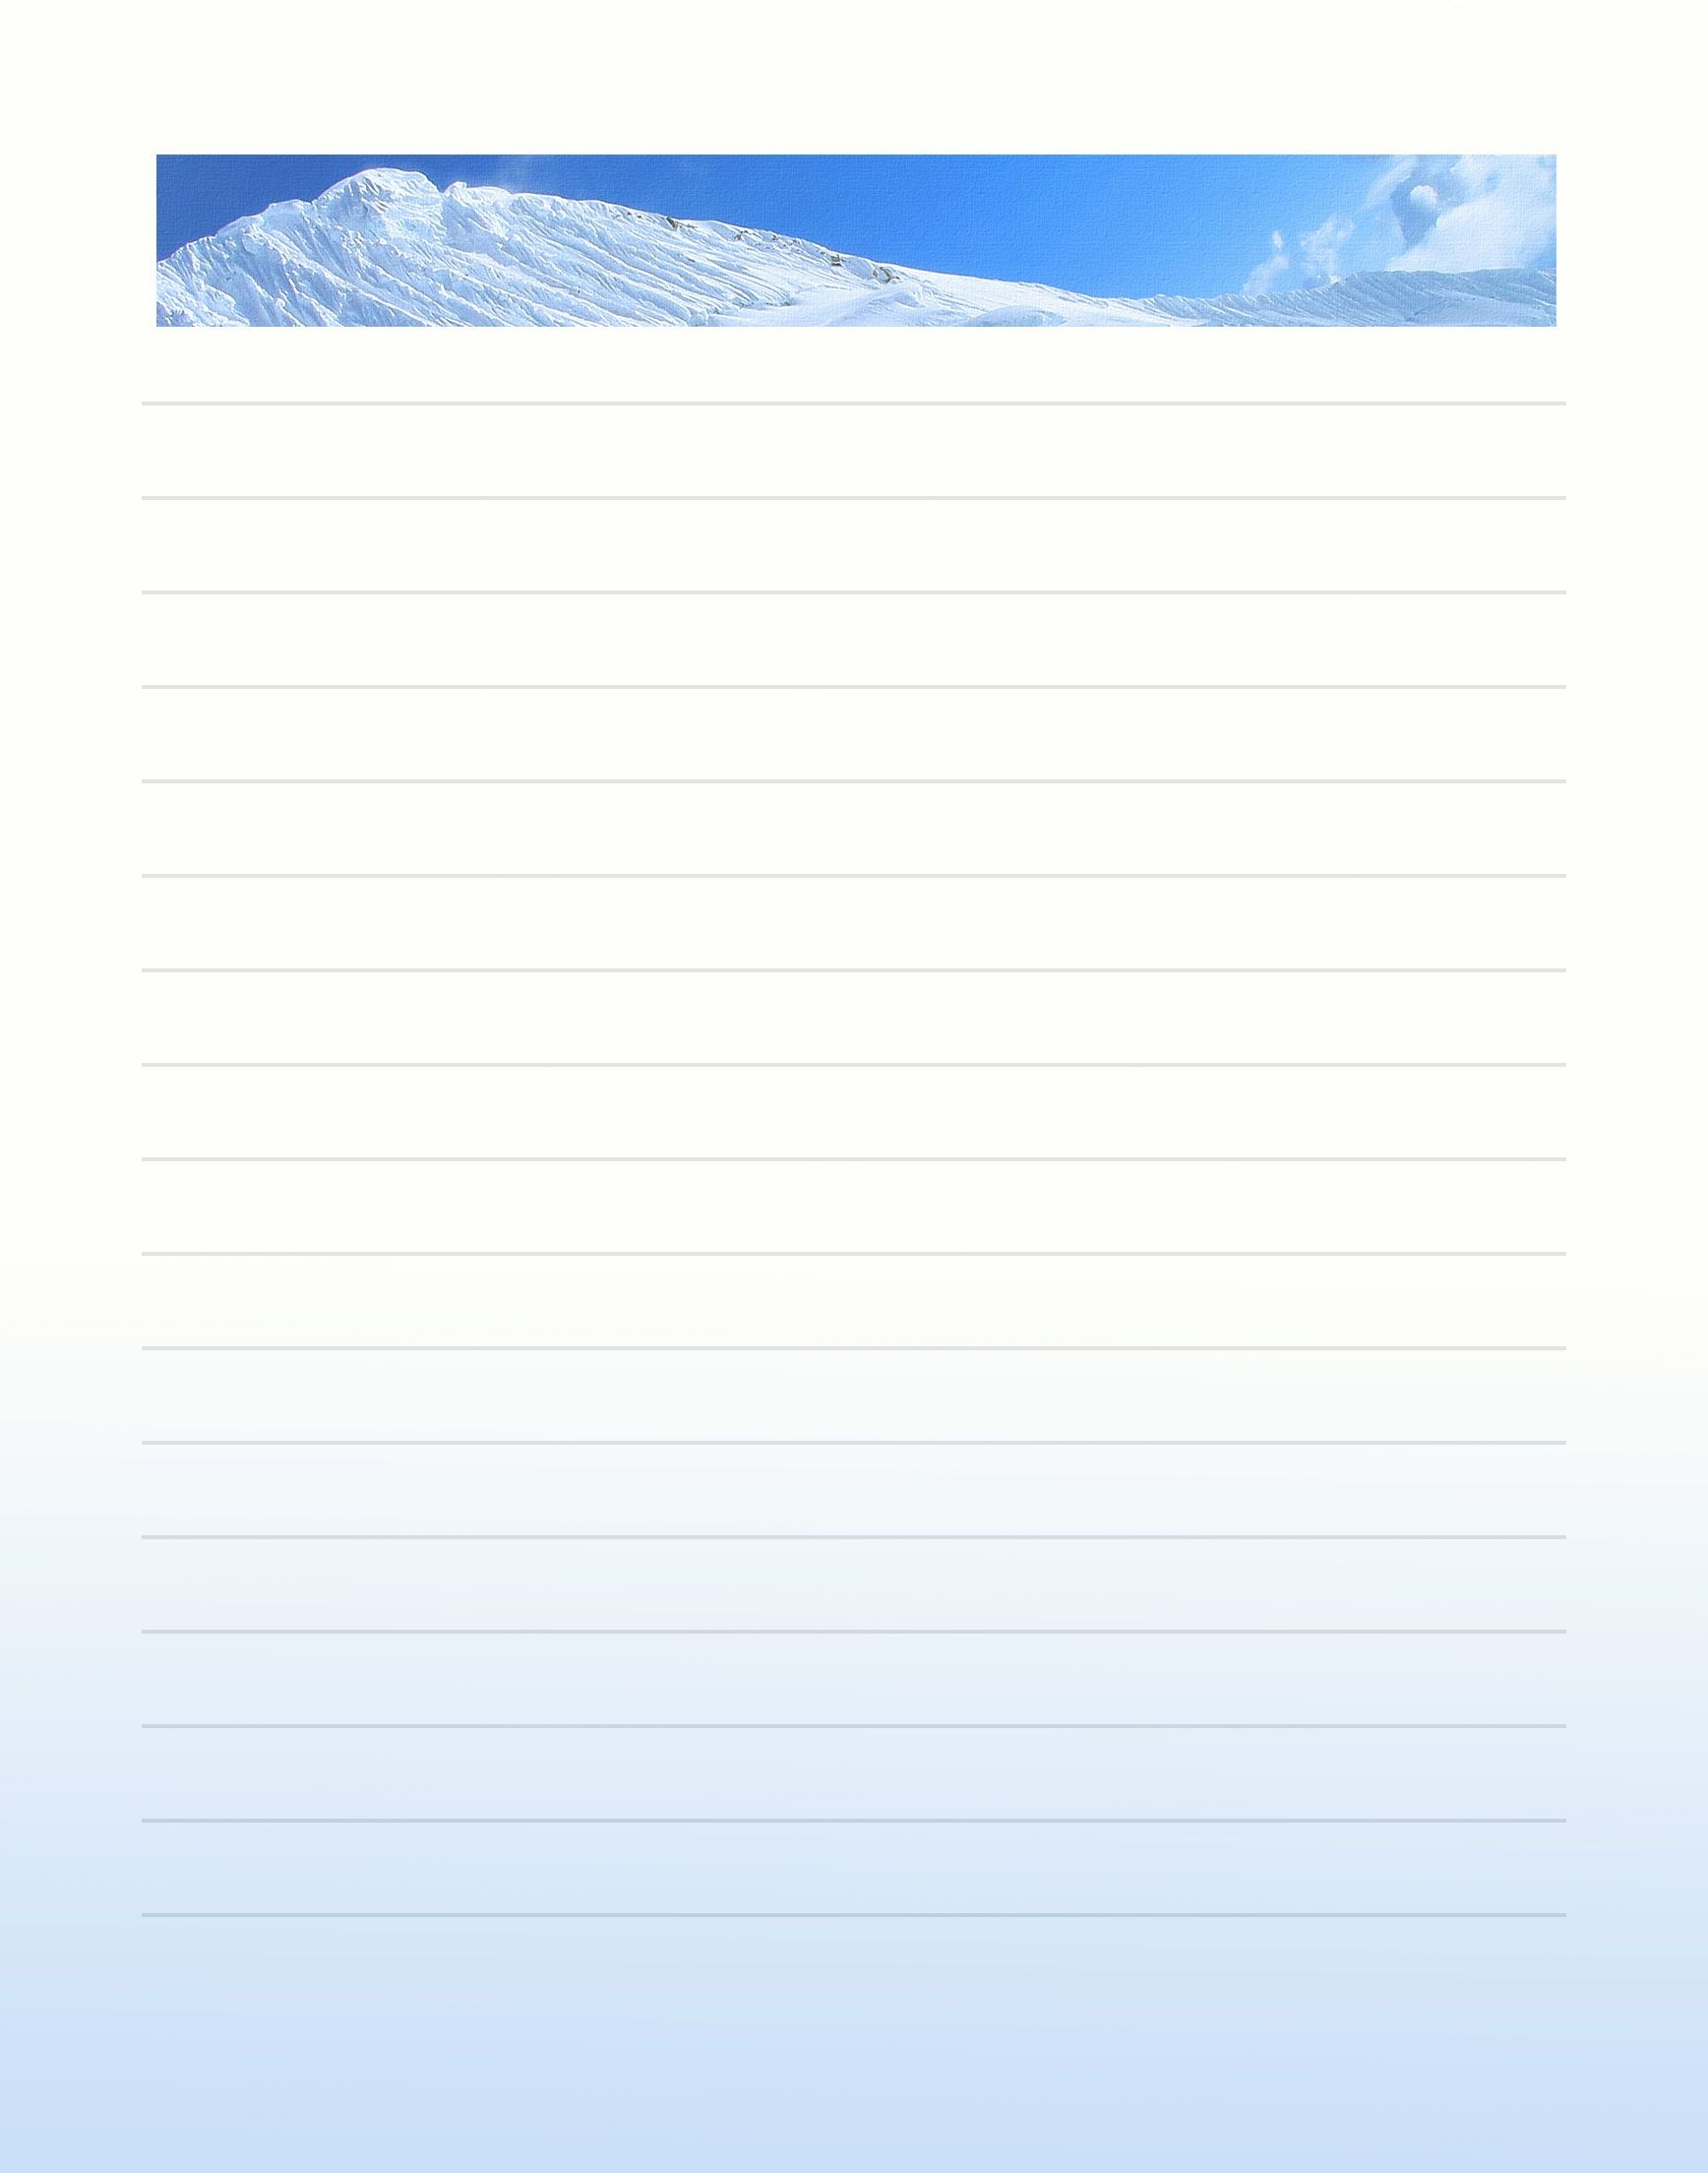 Lined Winter Free Printable Stationary (Stationery) | *stationery - Free Printable Winter Stationery